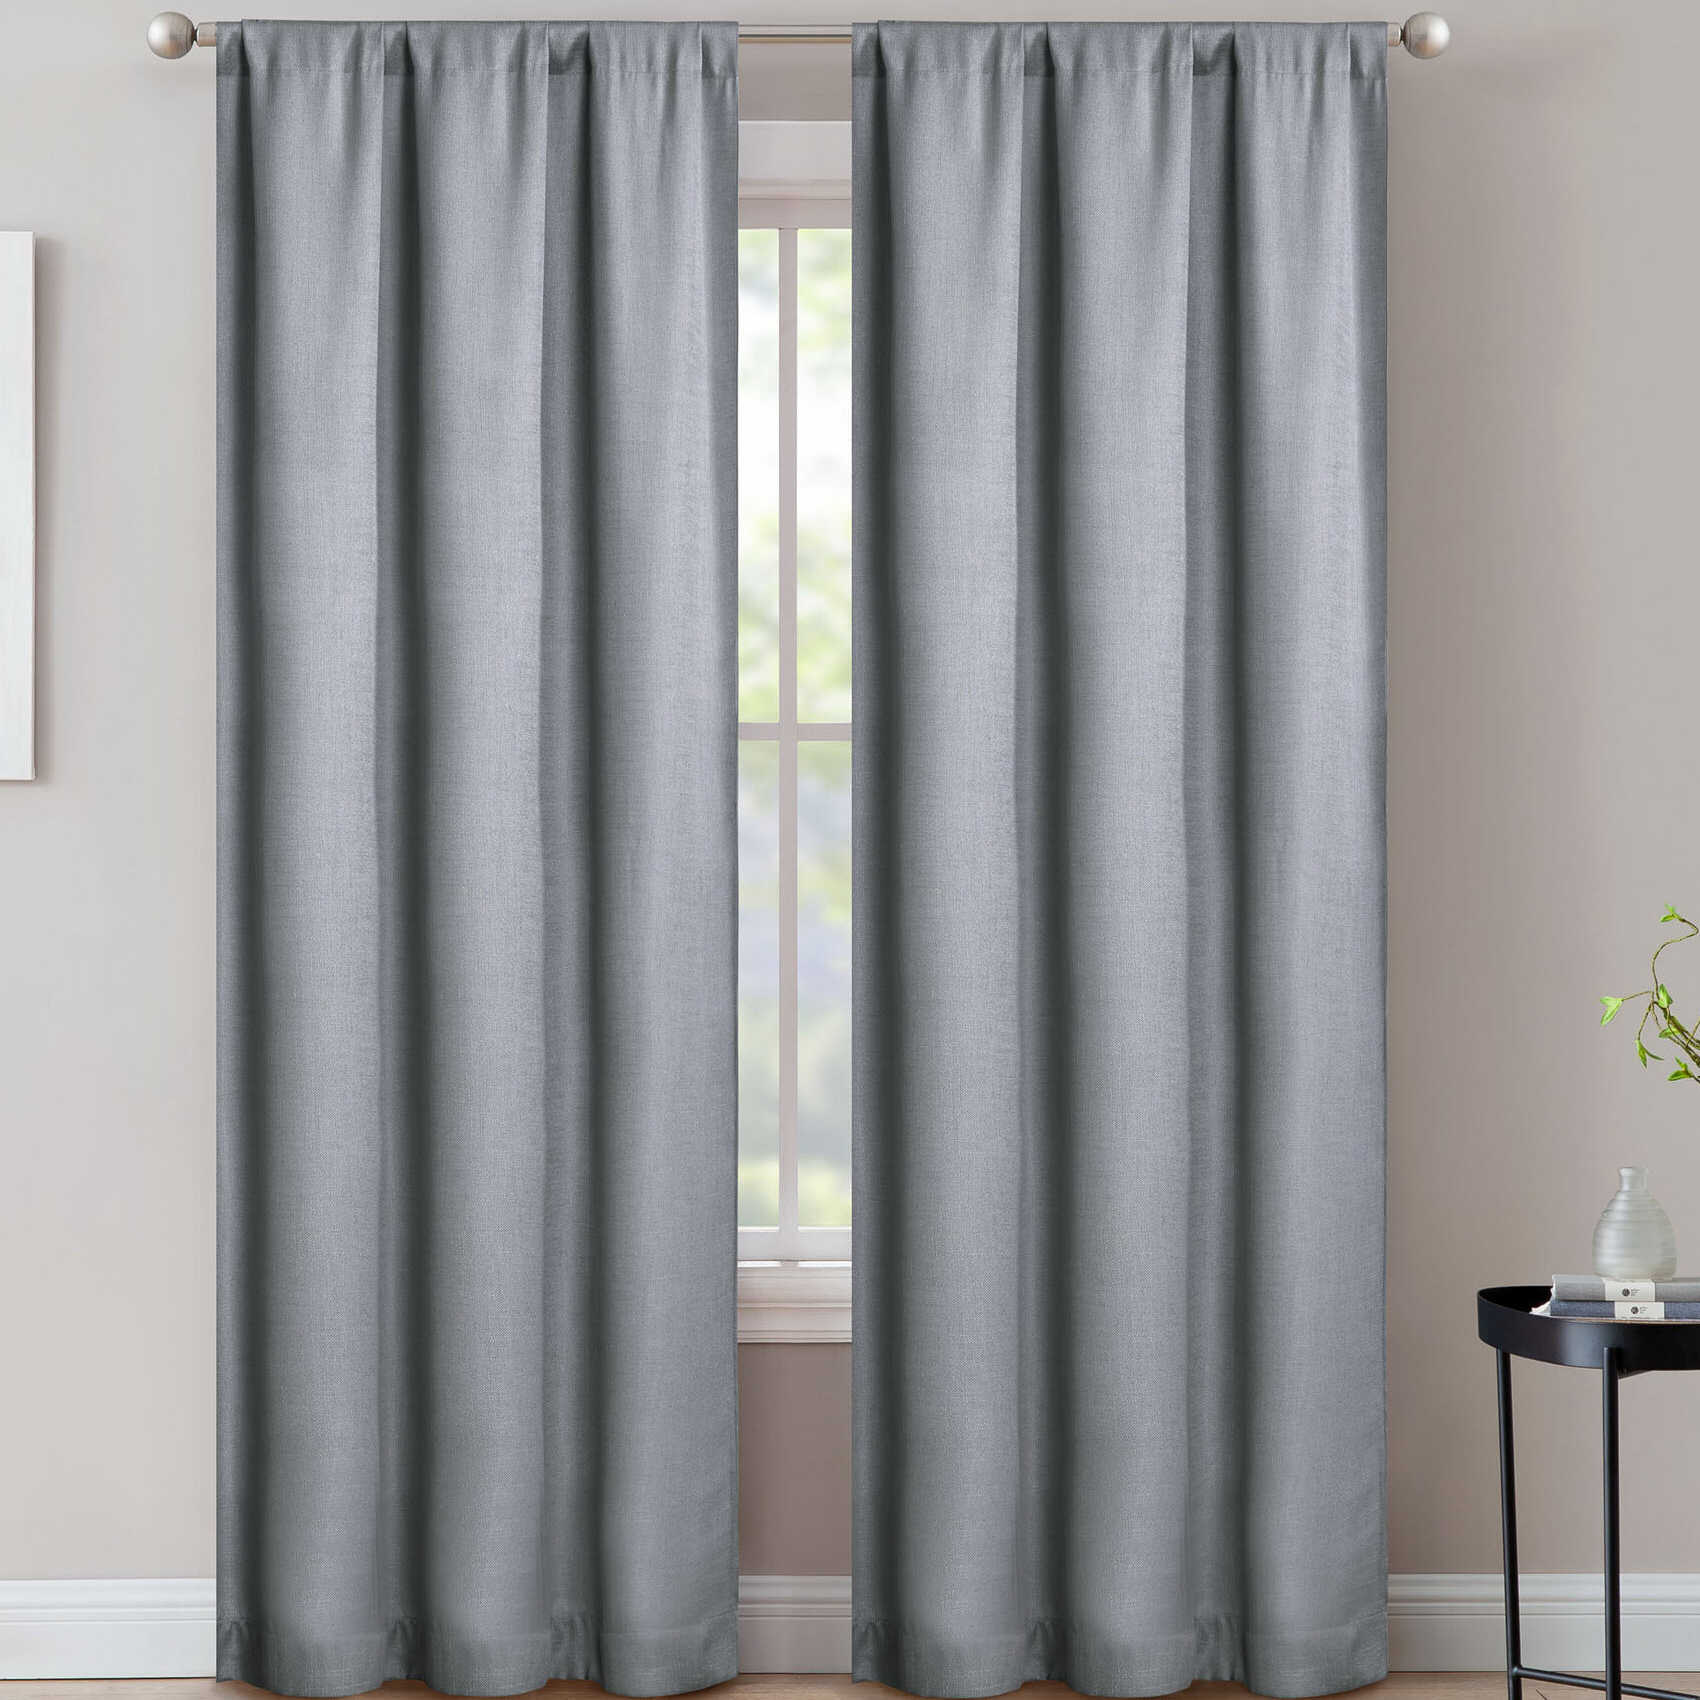 Widely Used Luxury Collection Cranston Sheer Curtain Panel Pairs Within Alexina Solid Color Room Darkening Rod Pocket Curtain Panels (View 17 of 20)